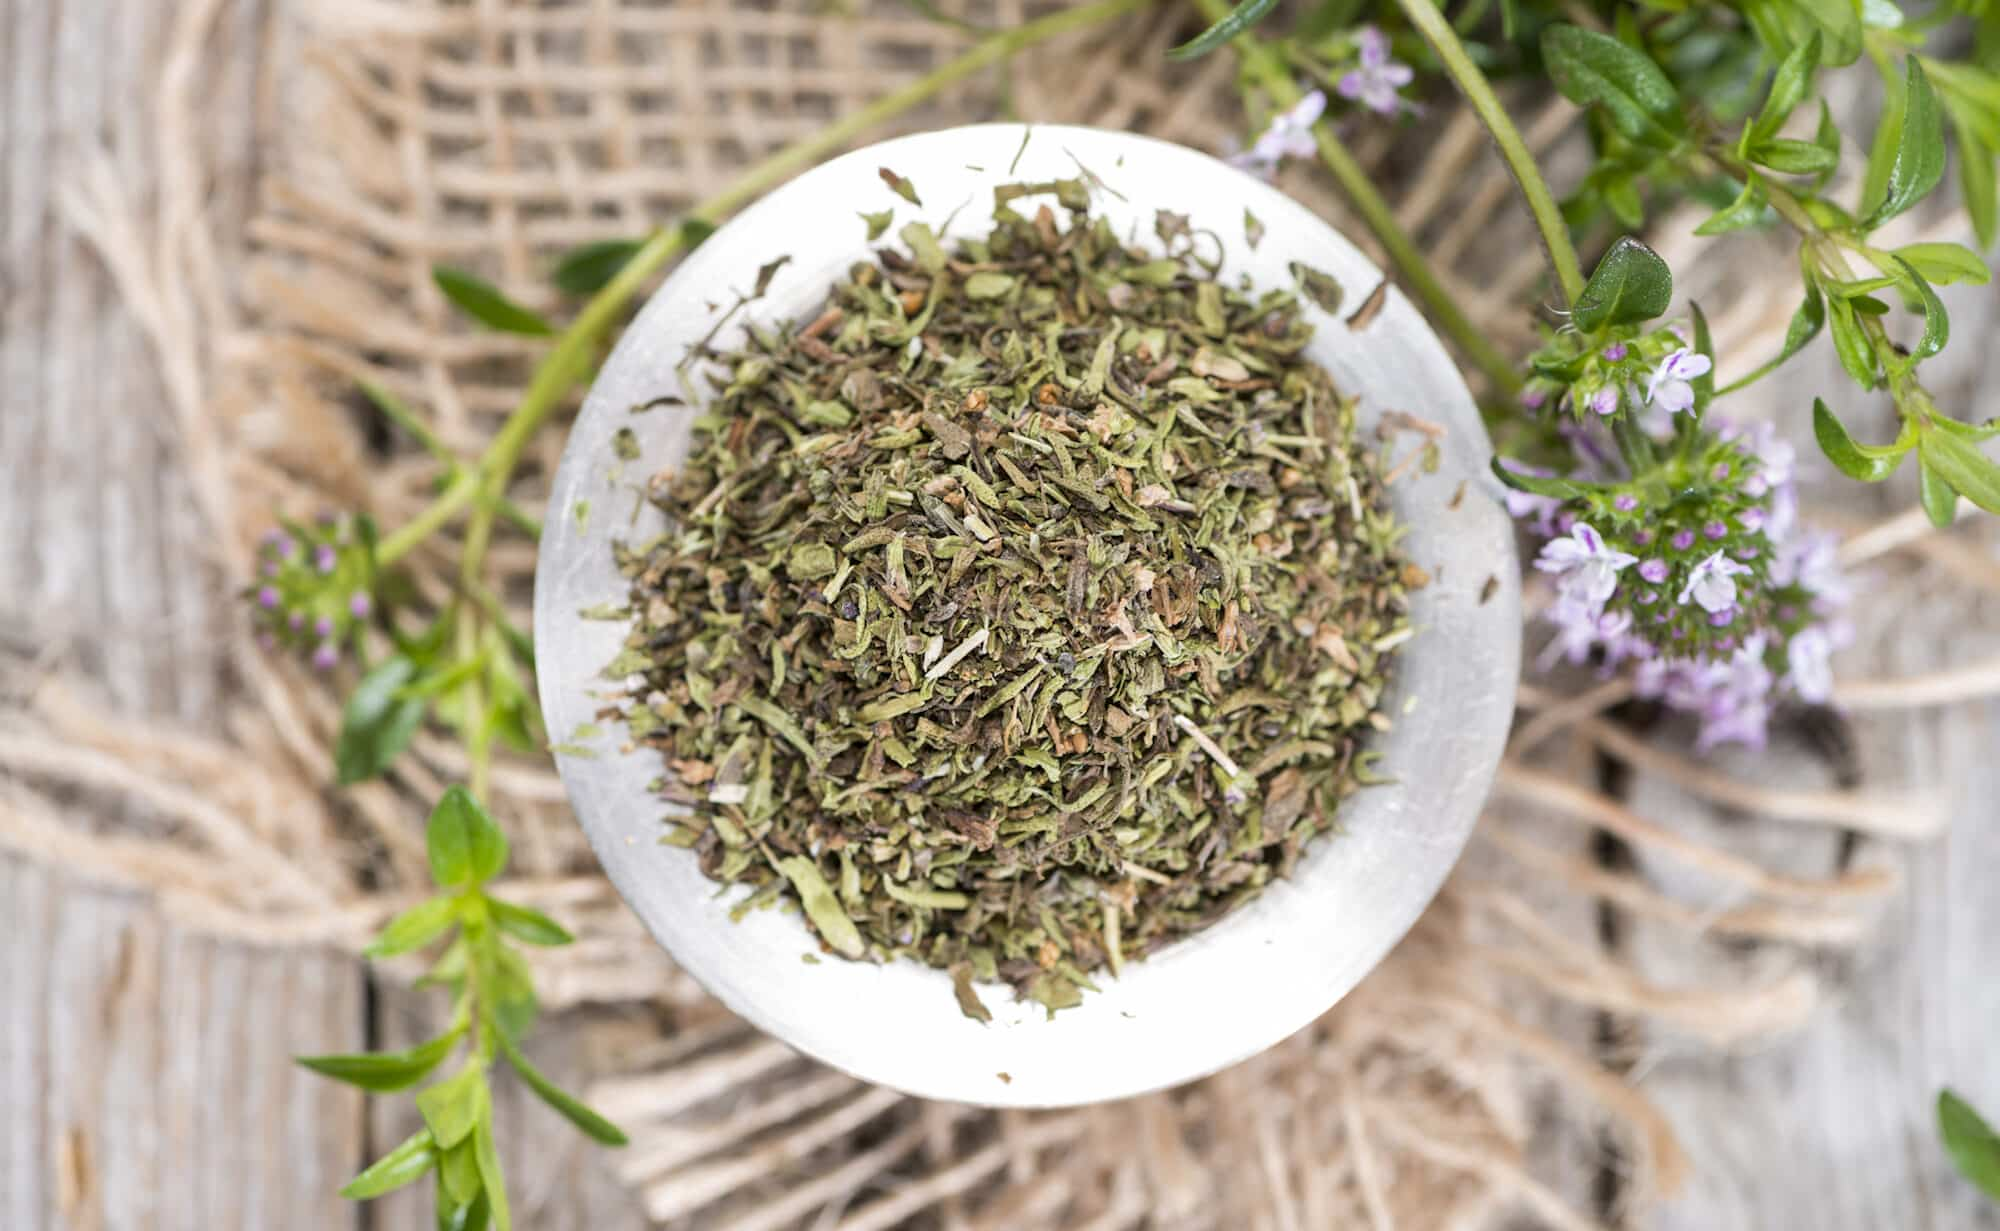 Winter Savory: A Poultry And Bean Herb